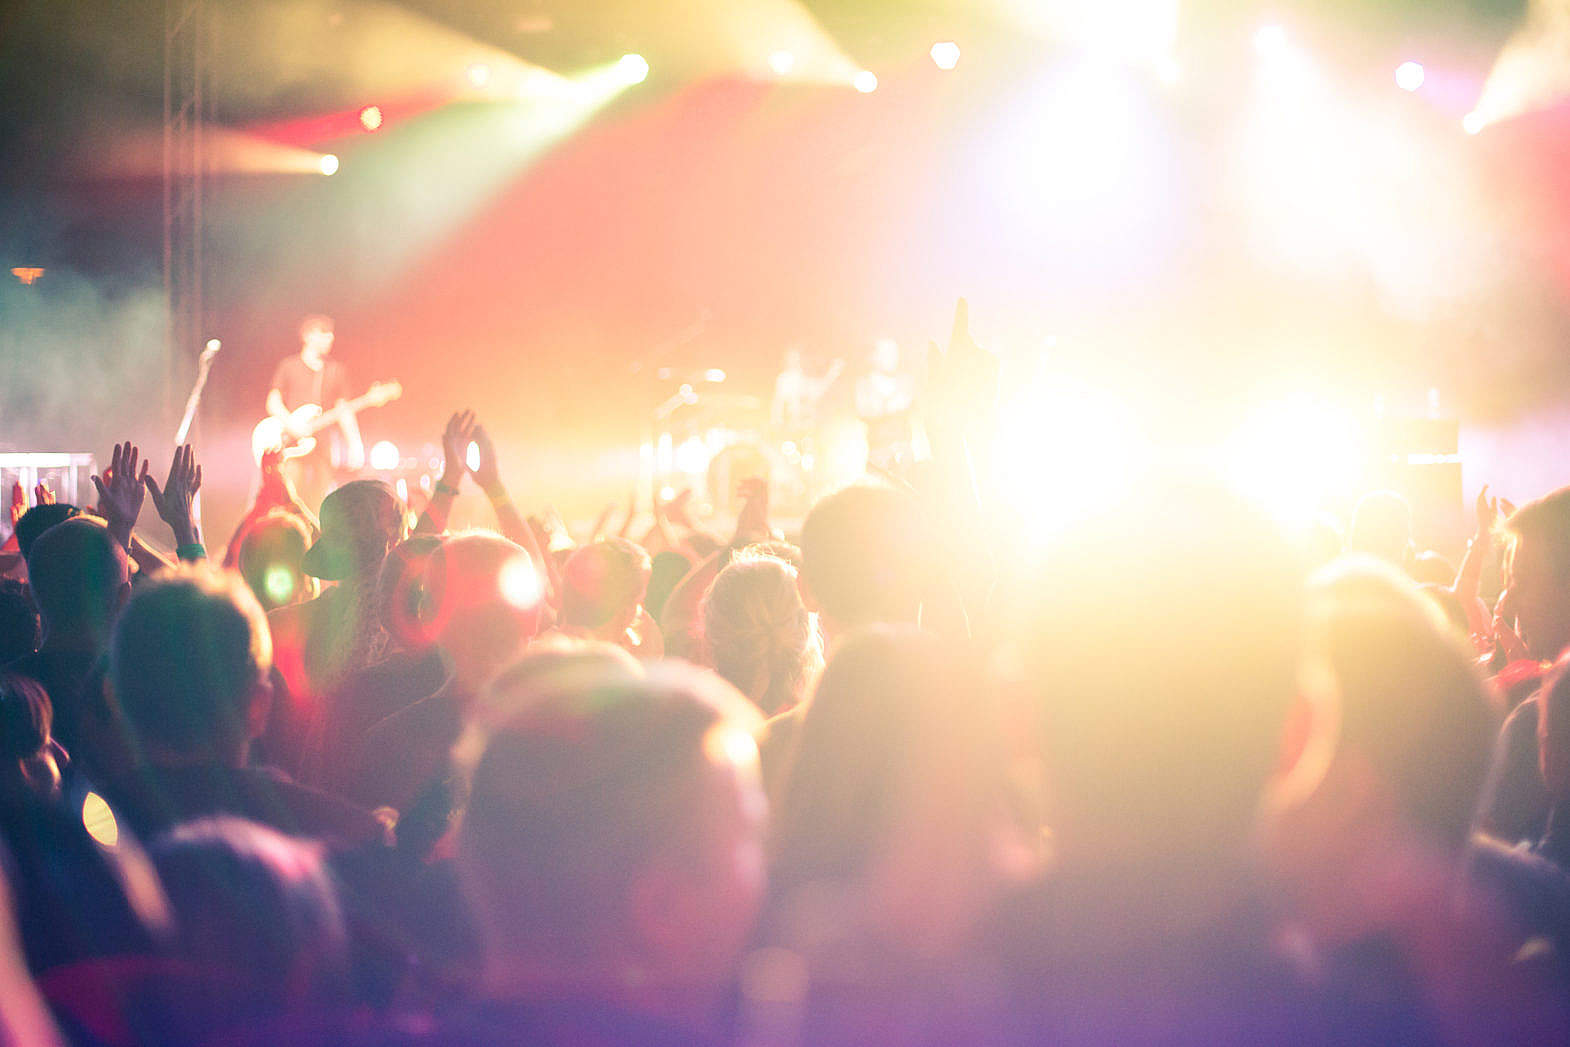 Club Night Party Concert Crowd of People Free Stock Photo Download